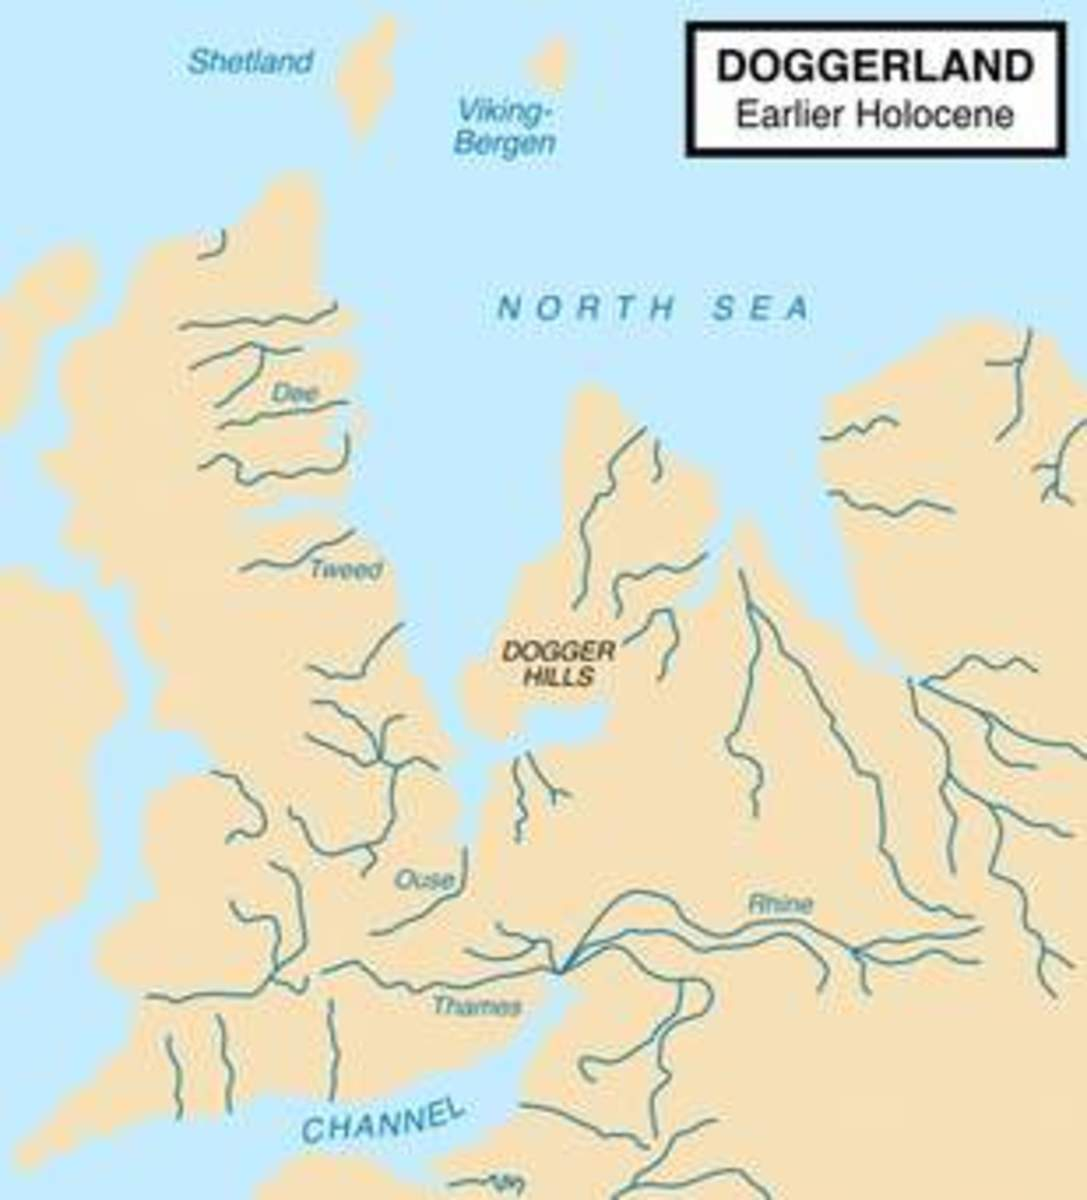 Main rivers that flowed through Doggerland